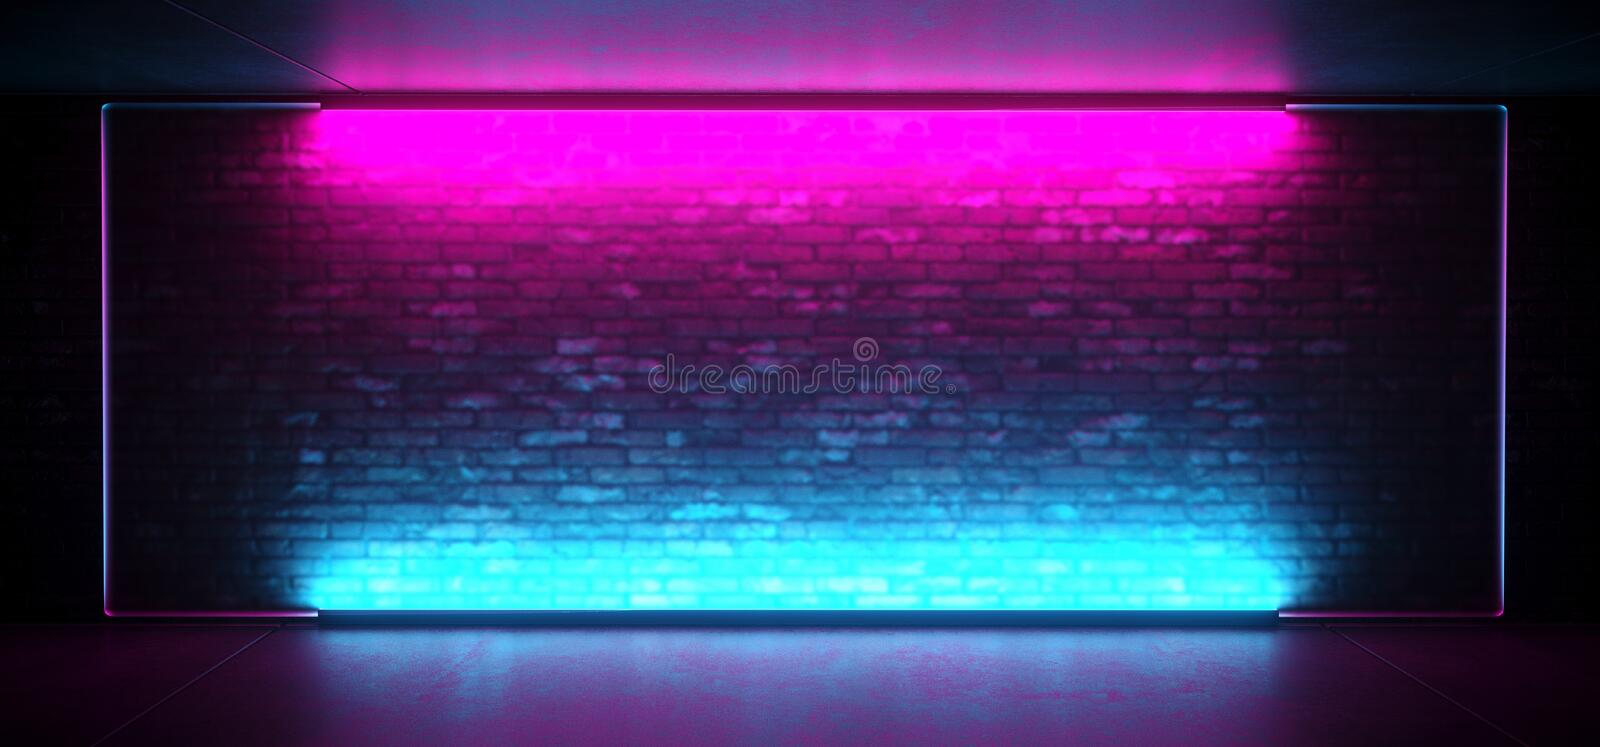 Neon Glowing Led Sci Fi Futuristic Retro Club Stage With Empty Lighted Purple Blue Frosted Glass Frame On Grunge Brick Wall. Concrete Floor Ceiling Reflections royalty free illustration